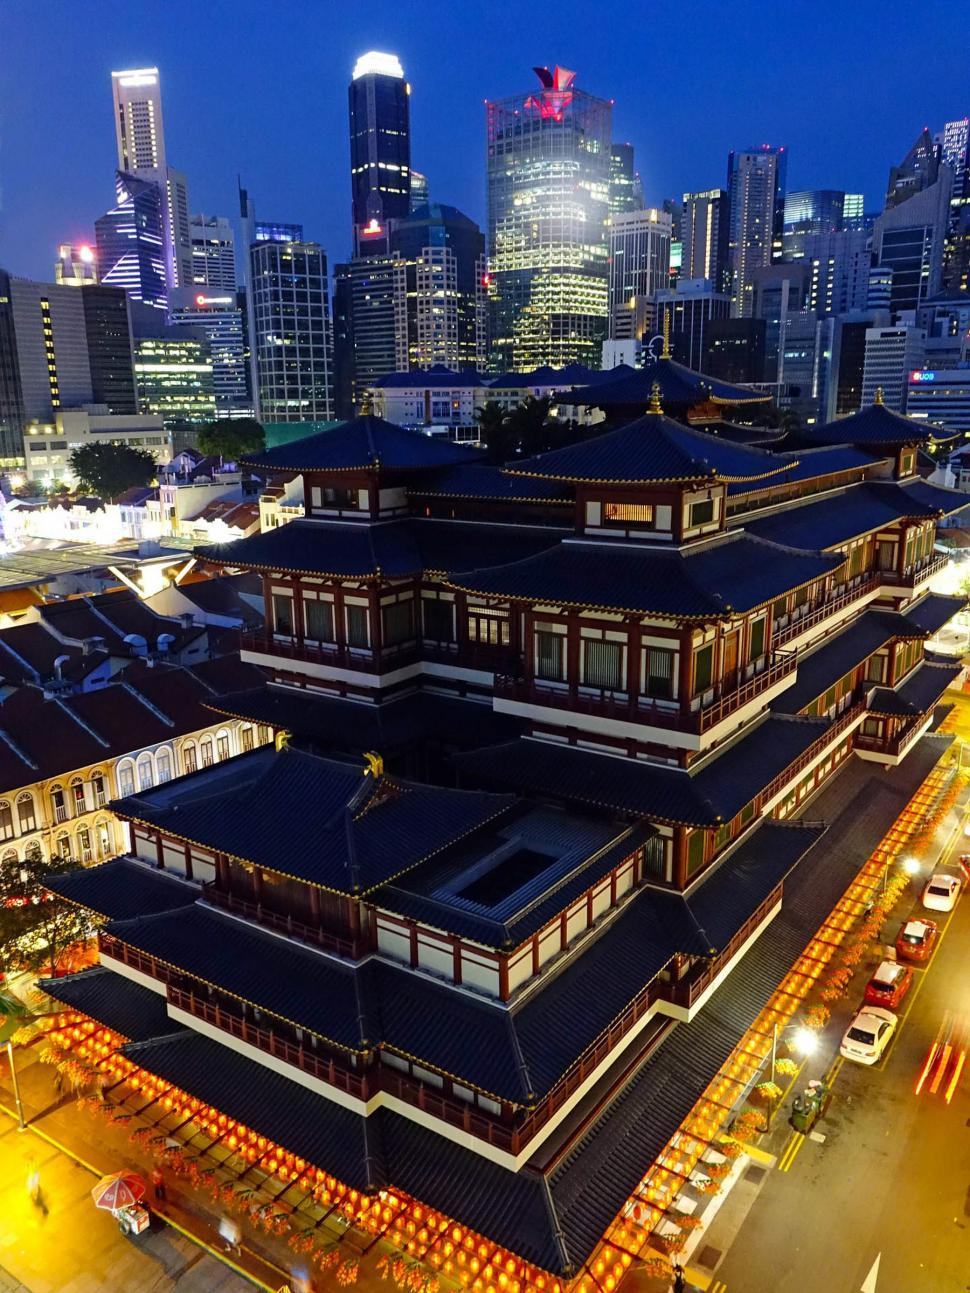 Download Free Stock HD Photo of Singapore Buddha Tooth Relic Temple, night Online